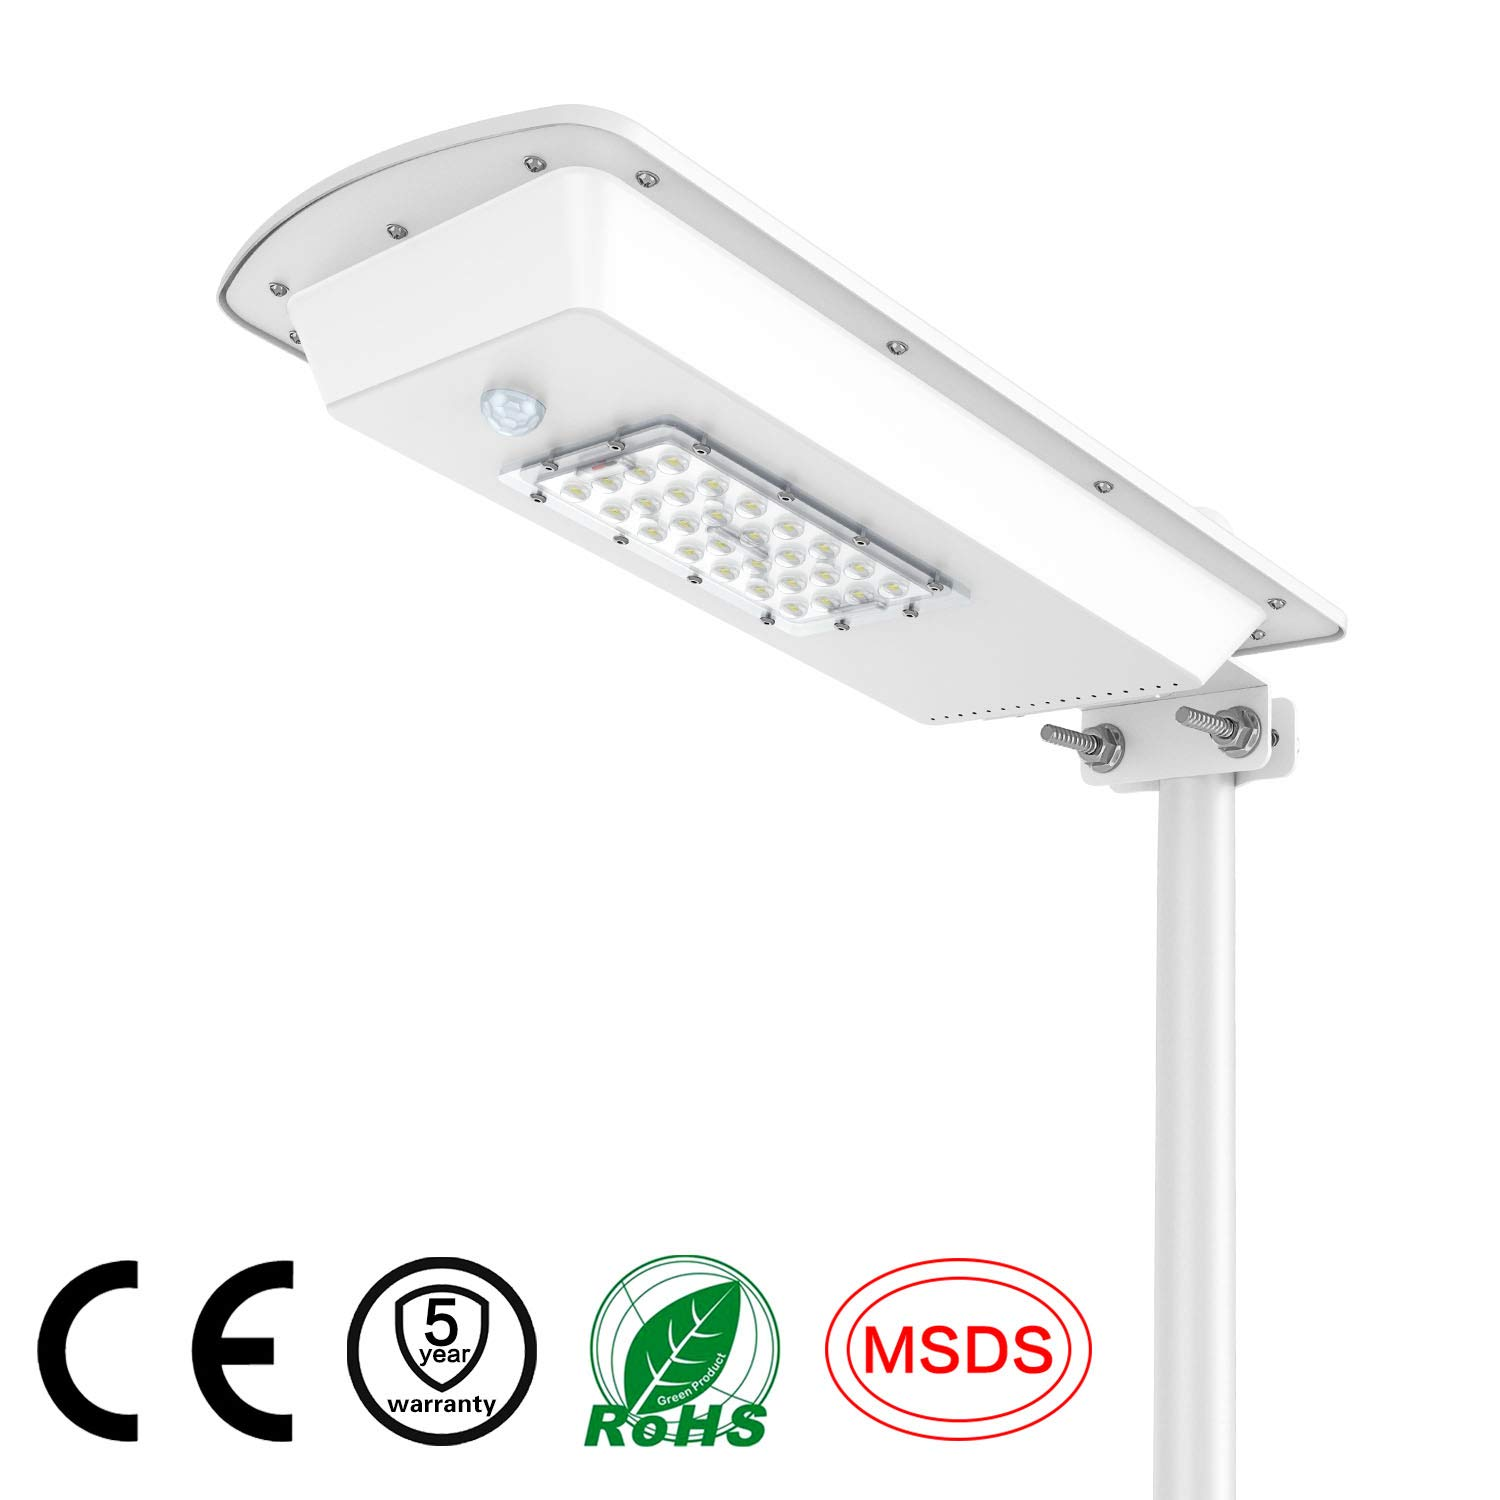 15W Solar Street Lights Outdoor Lamp, 28 LEDs 2000 Lumens, with Motion Sensor, Light Control, Dusk to Dawn Security Led Flood Light for Yard, Garden, Street, Basketball Court